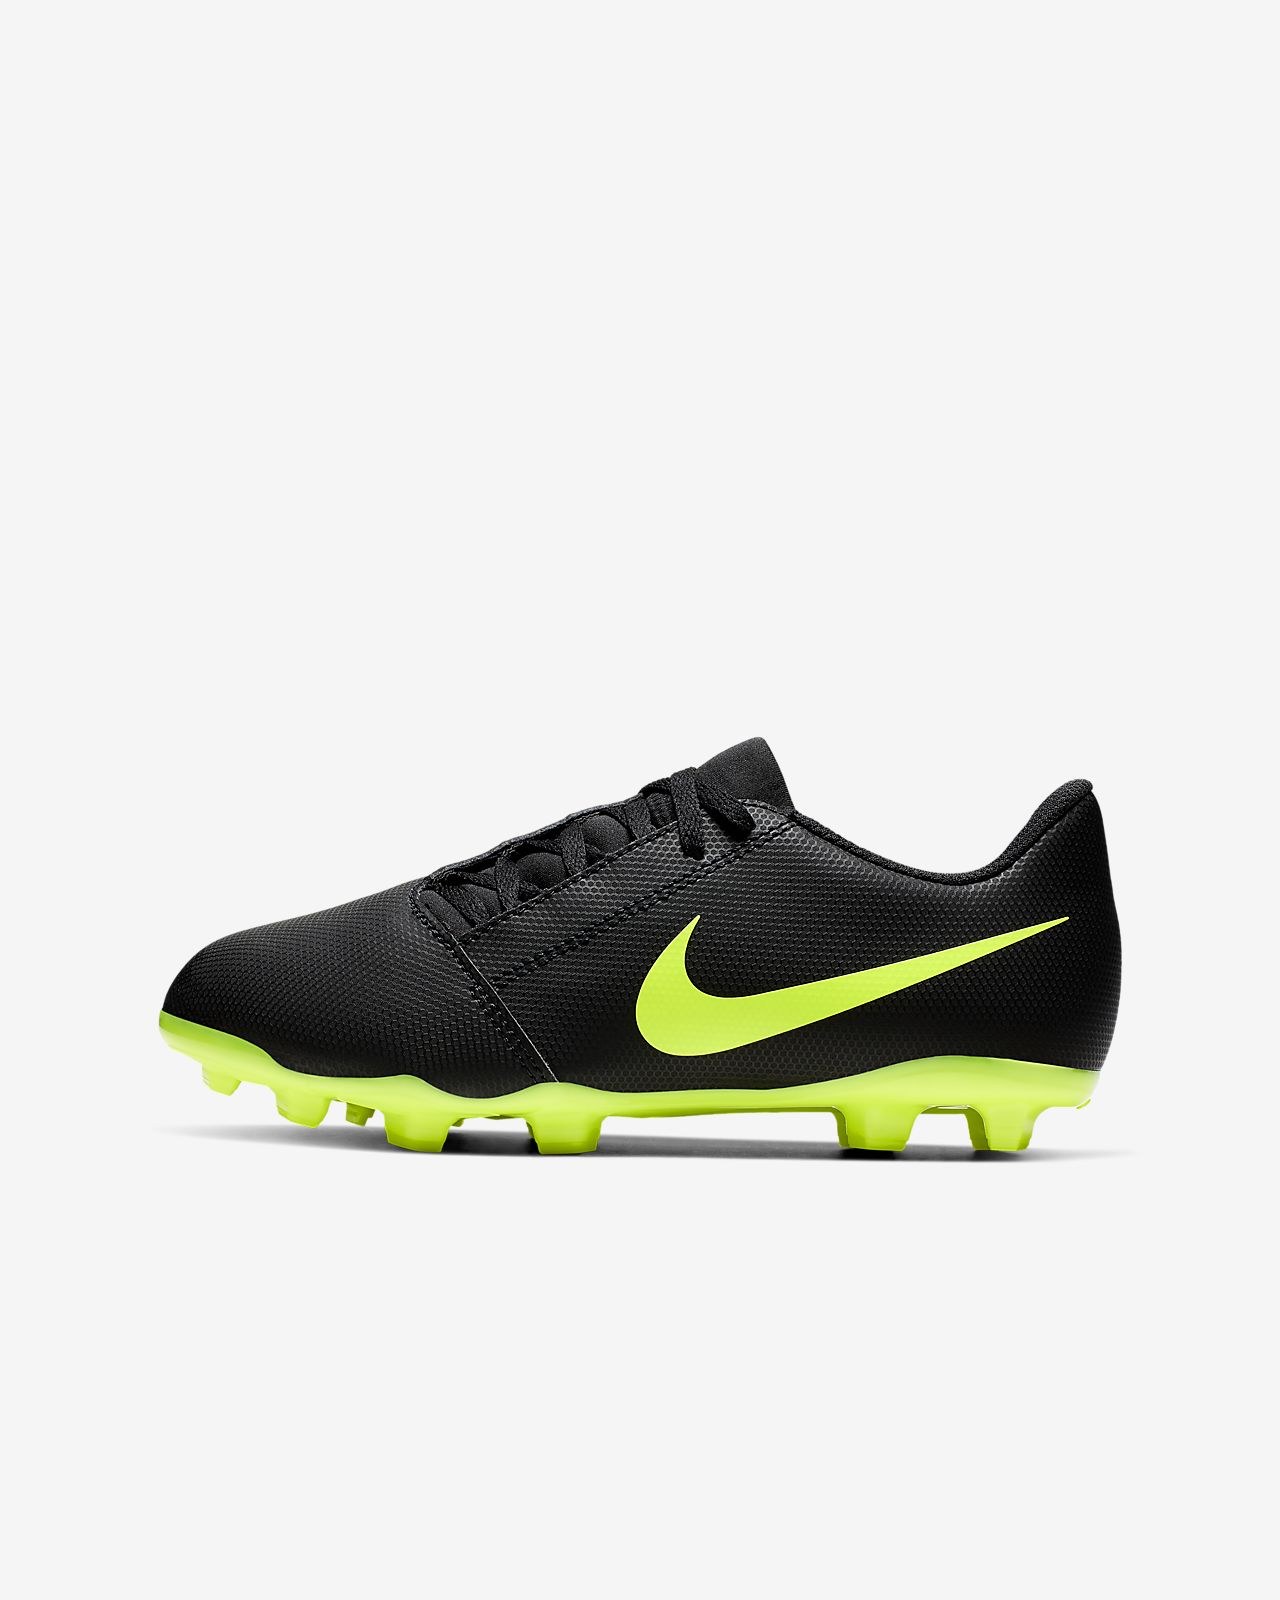 zapatilla Hacer bien carrete  Nike Jr. Phantom Venom Club FG Kids' Firm-Ground Football Boot. Nike PT